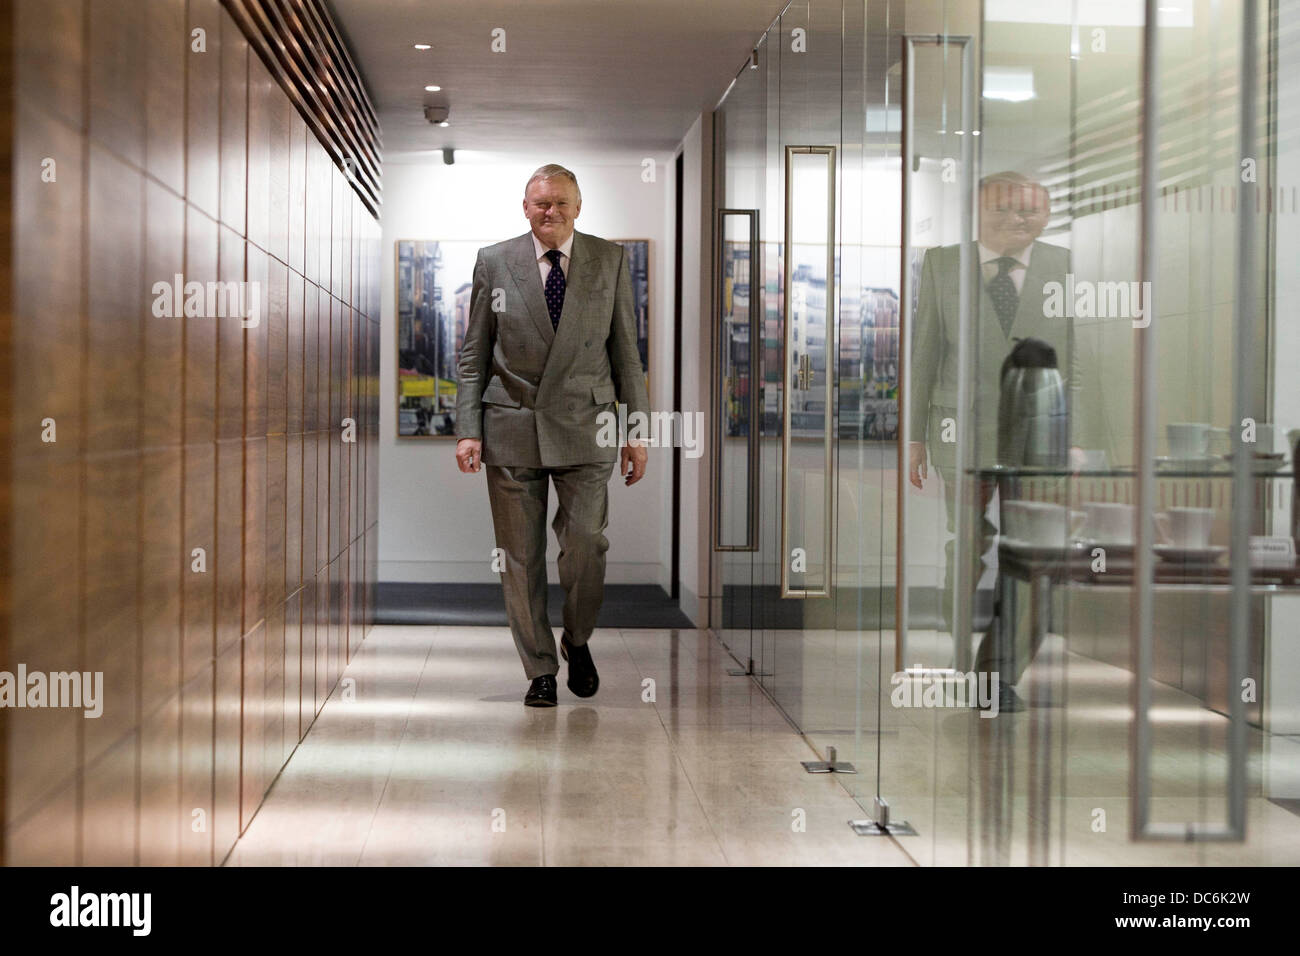 Bruntwood Chairman Michael Oglesby - Stock Image